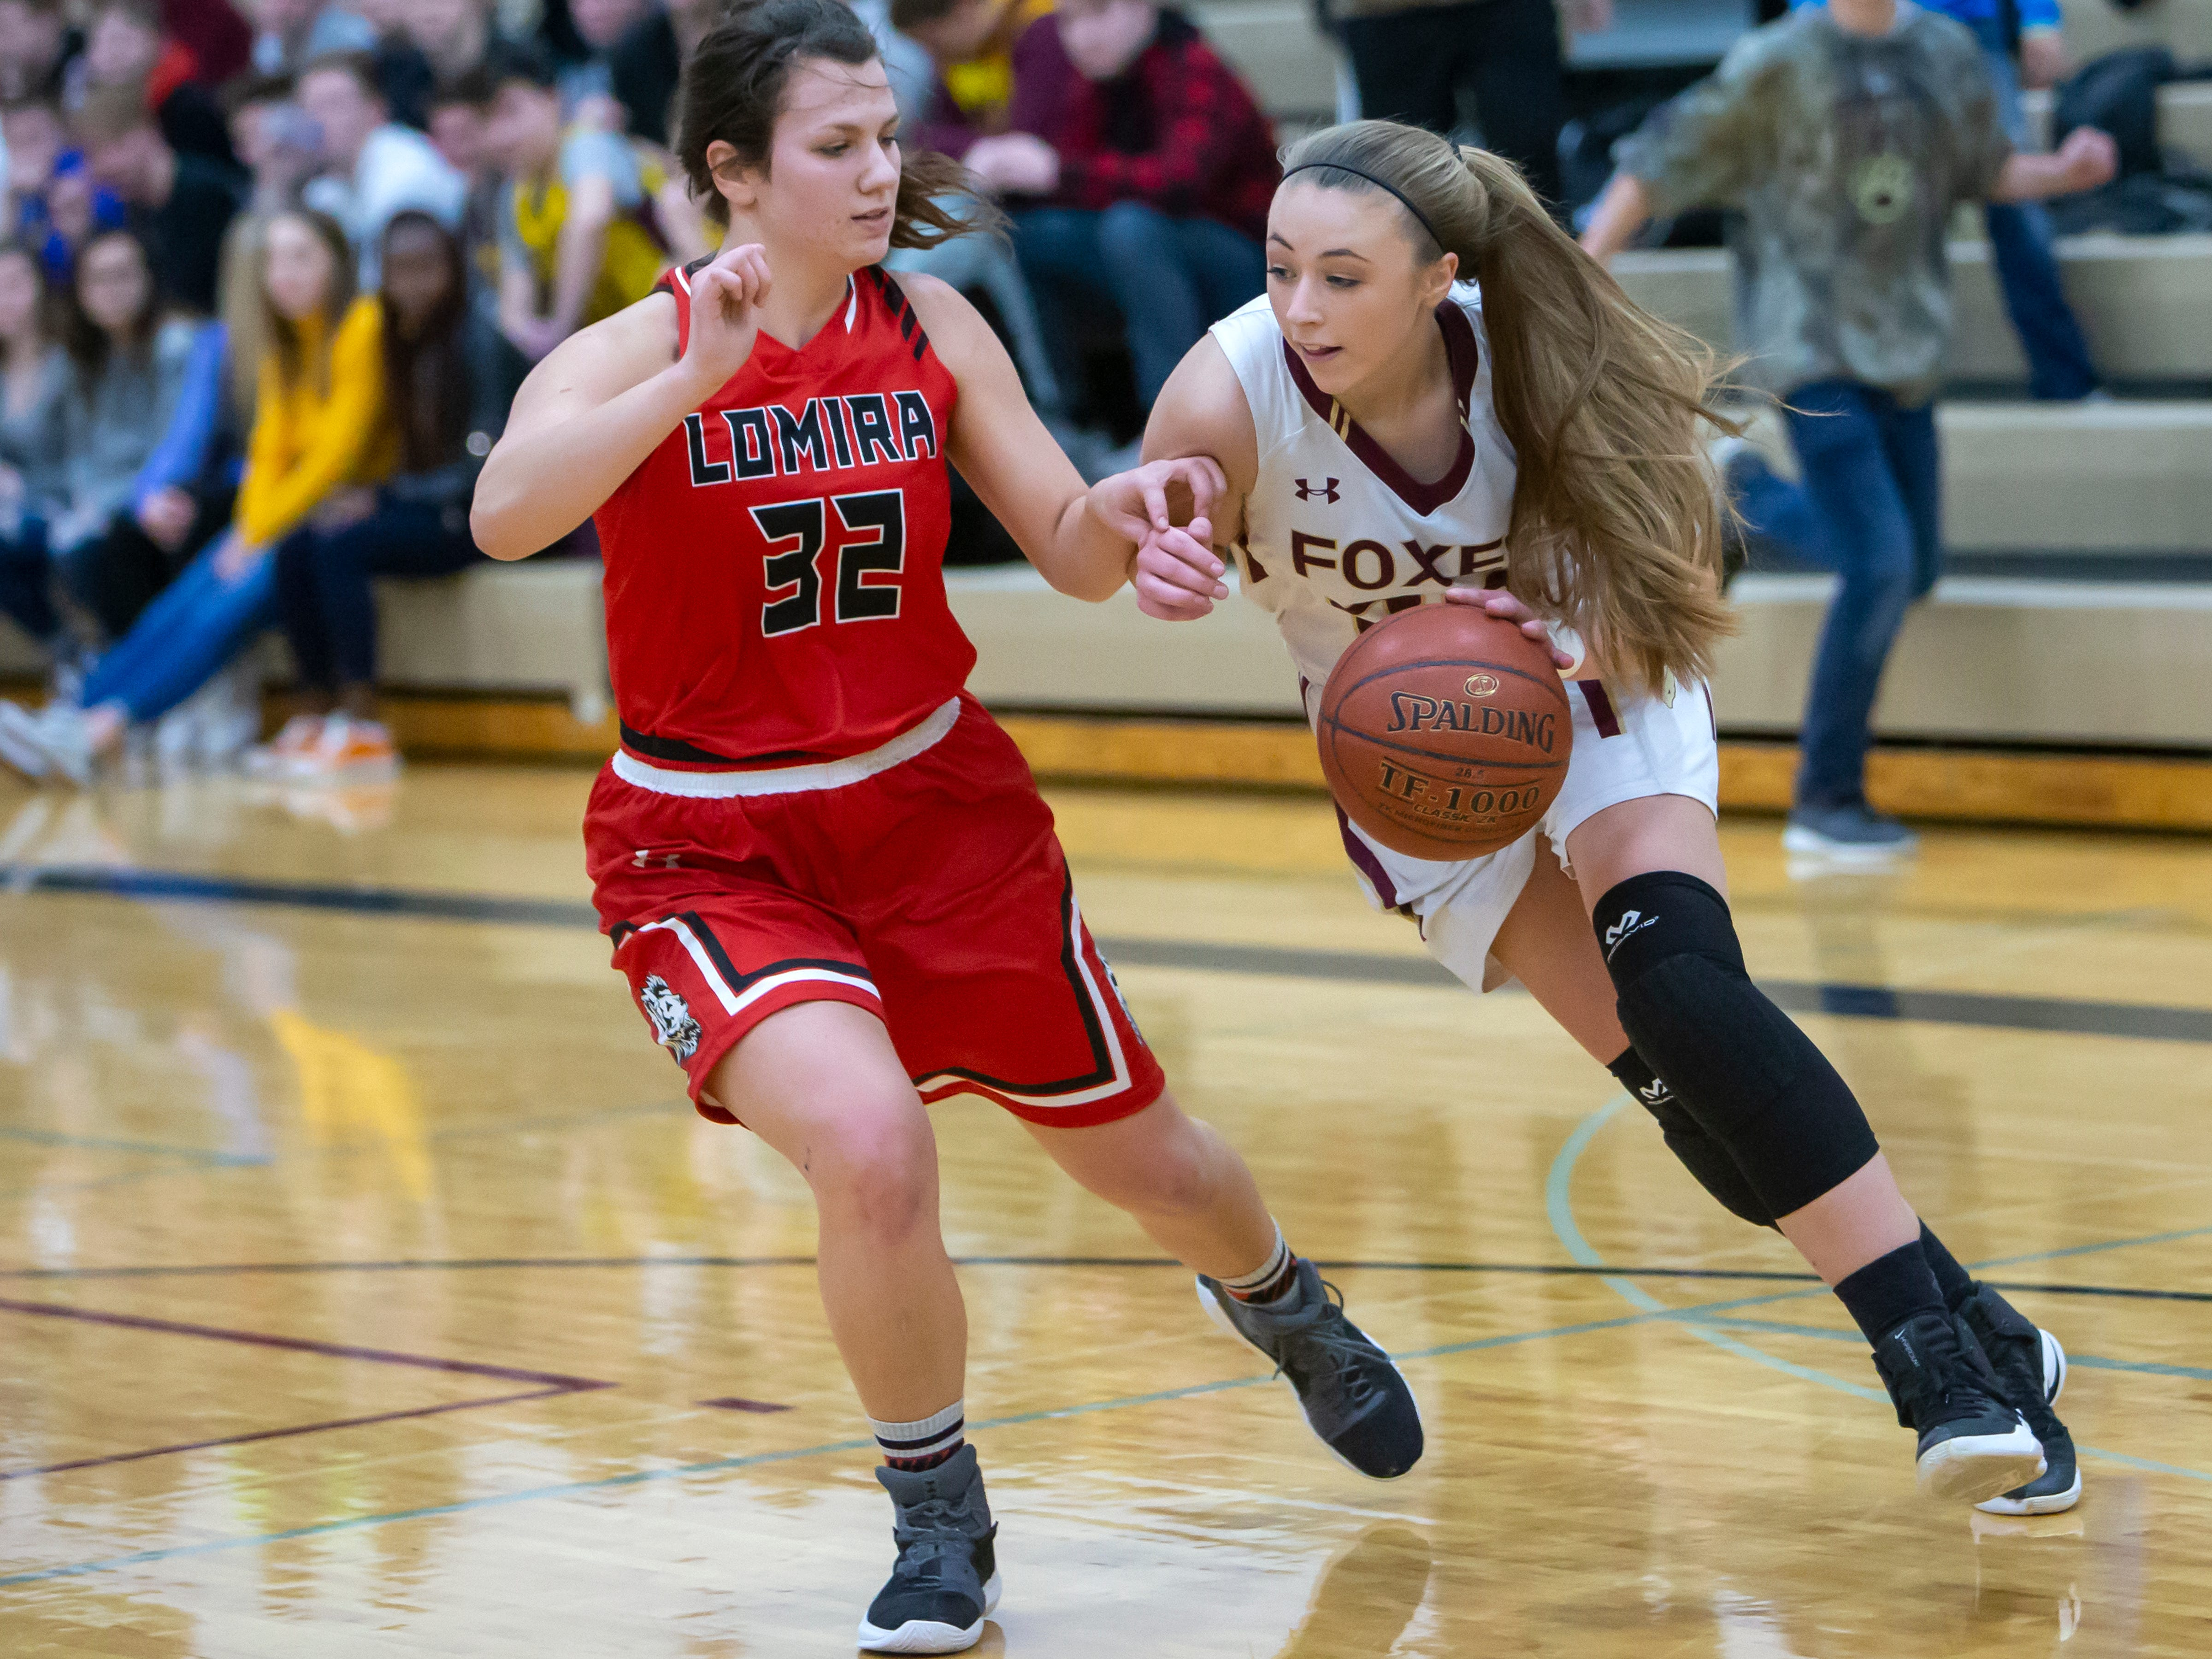 Omro's Taylor Lewis drives the ball to the basket around Lomira's Crystal Geiger at Omro High School on Friday, December 14, 2018.